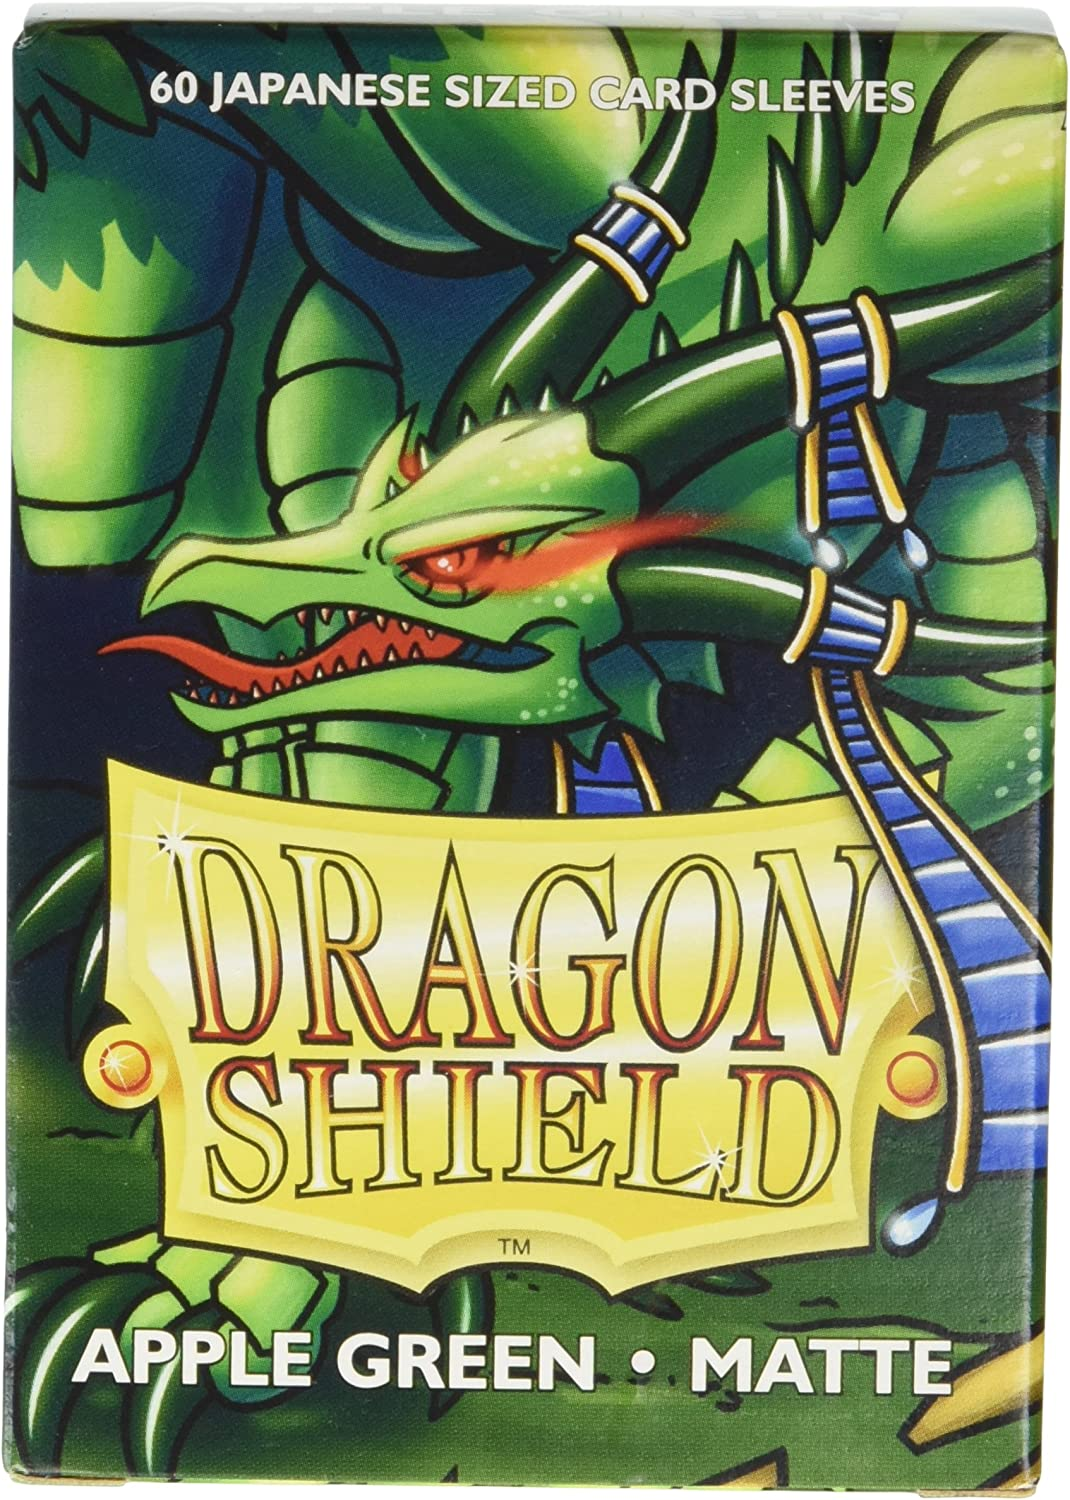 Dragon Shield Sleeves - Matte Japanese Apple Green (60) Card Sleeves